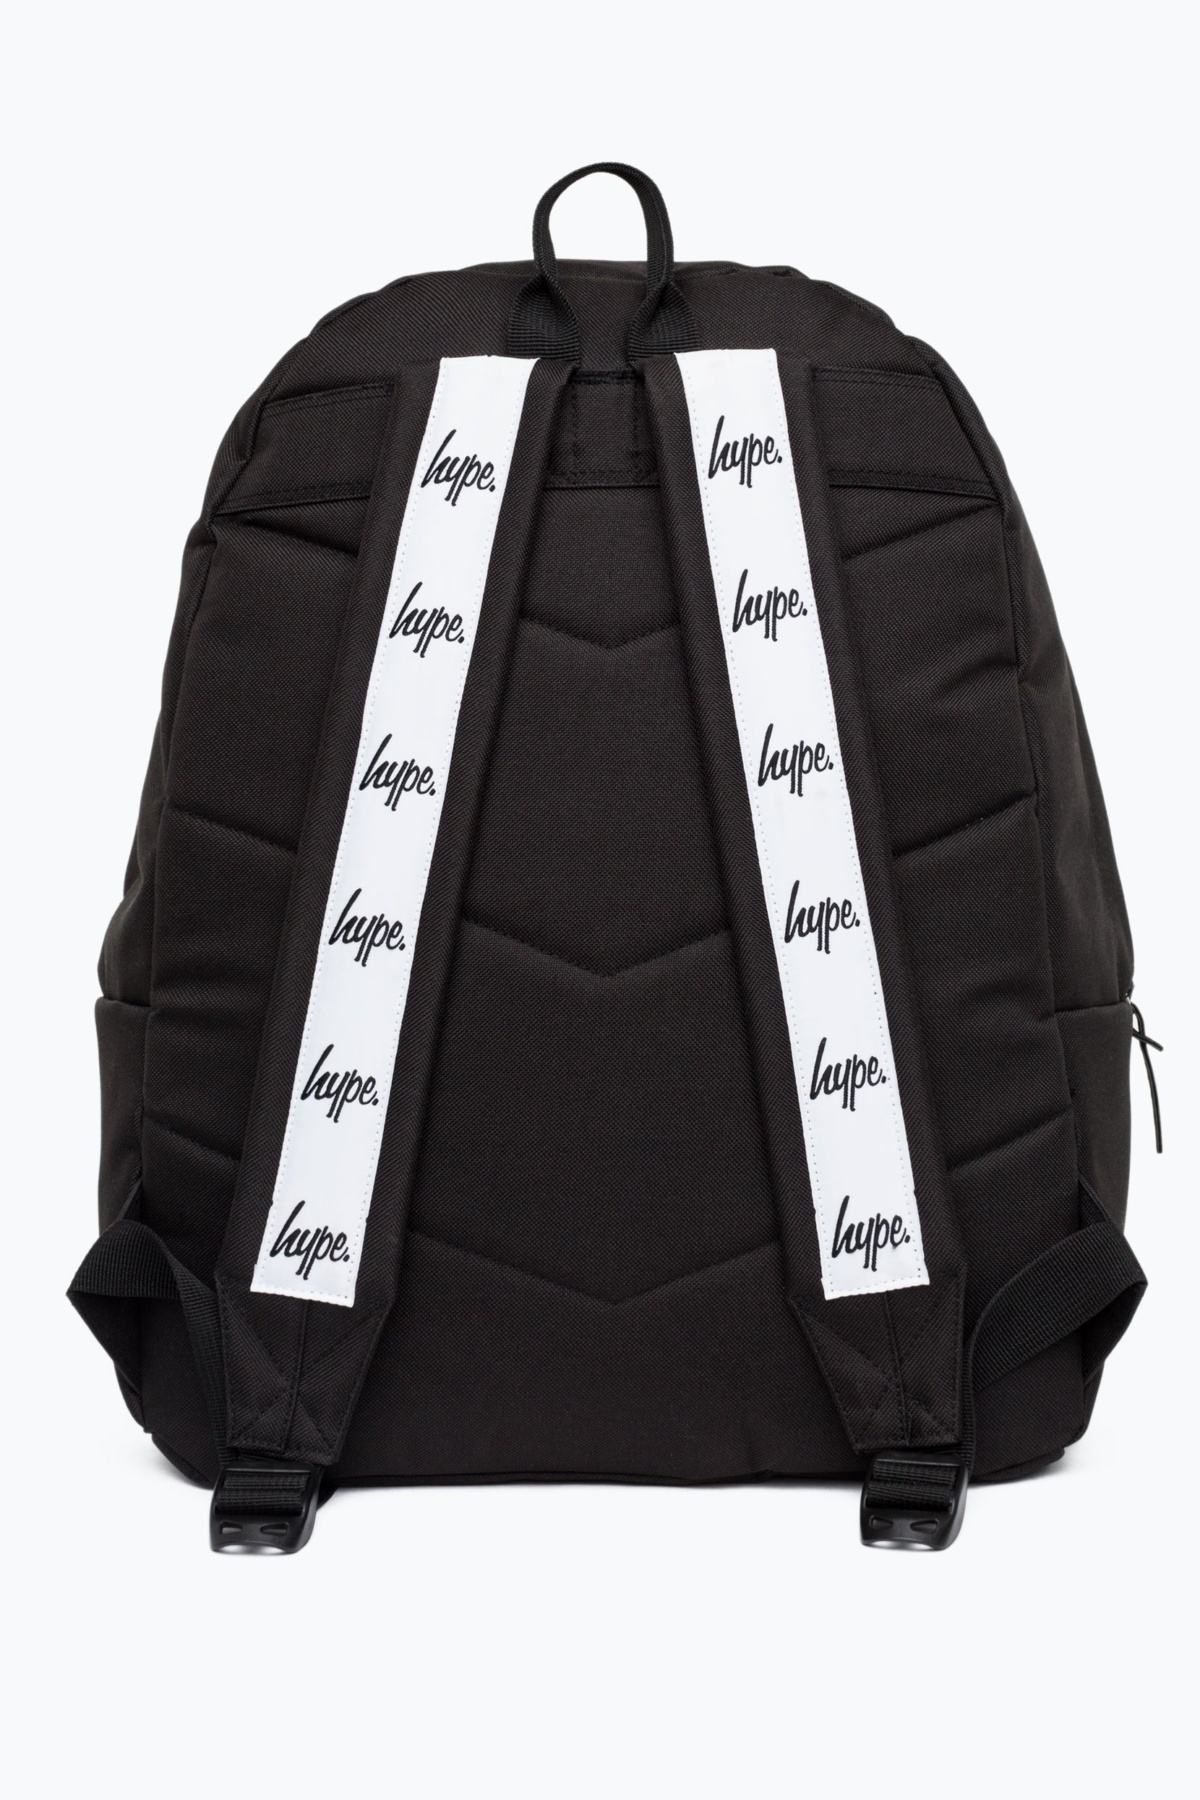 81055709 HYPE - Black Strap Tape Backpack - Weightless.no